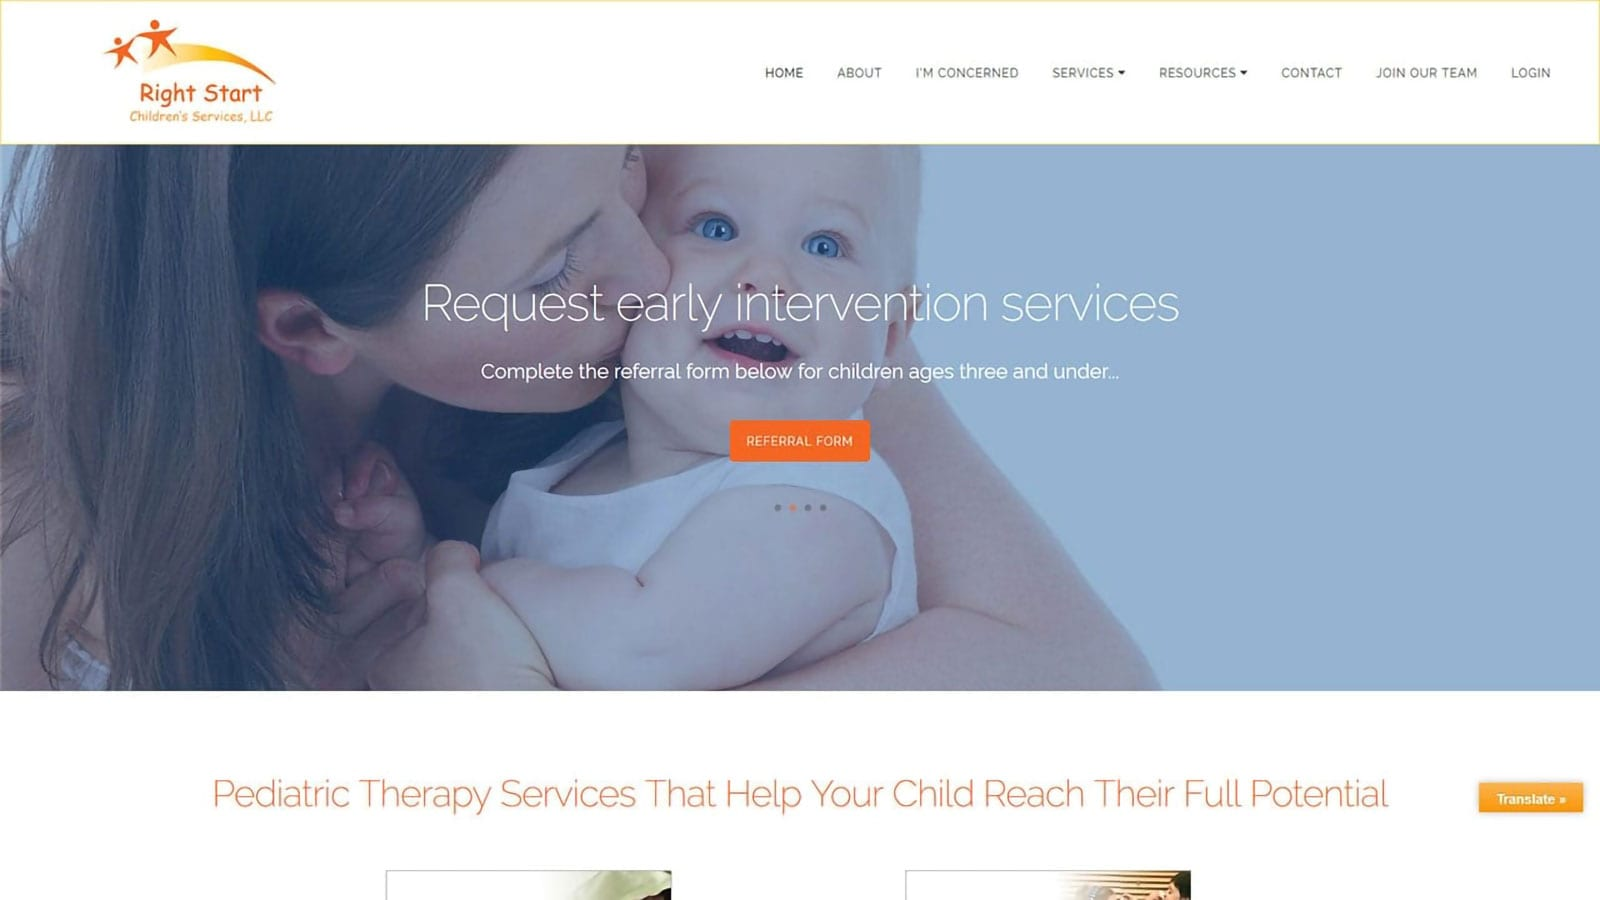 Right Start Children's Services Seeks Digital Marketing Support from DaBrian Marketing